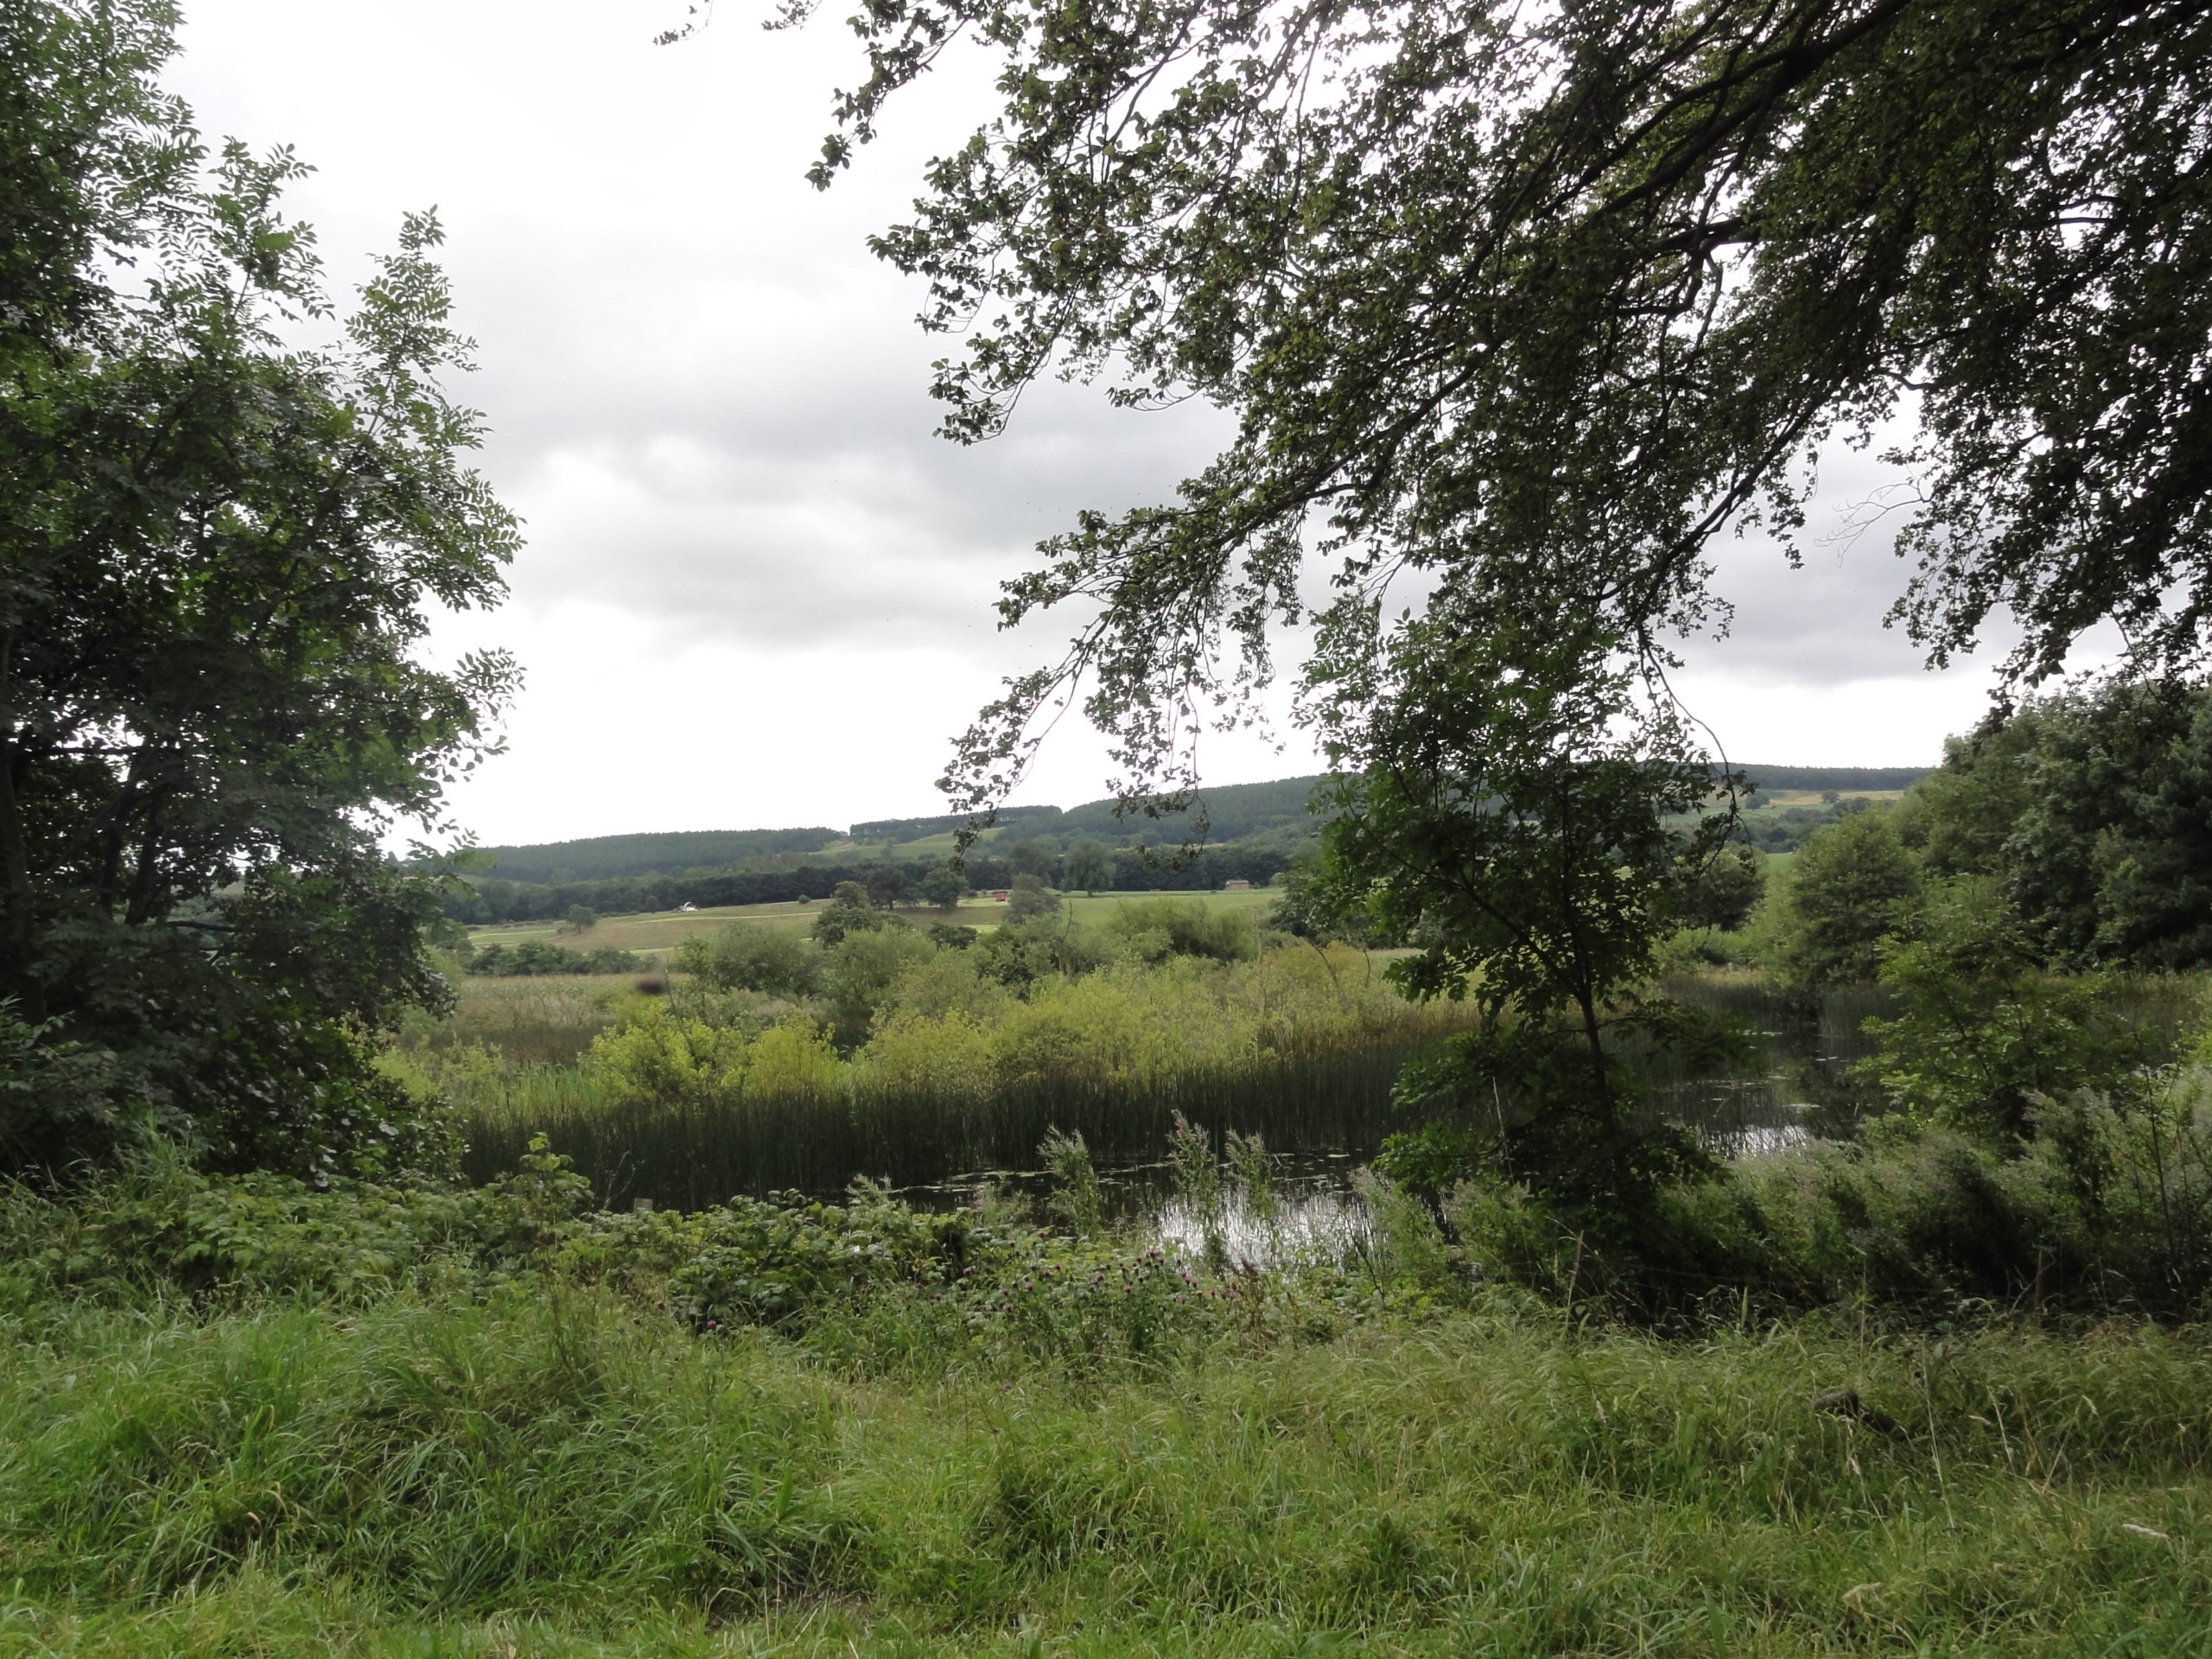 Banks of the River Ure